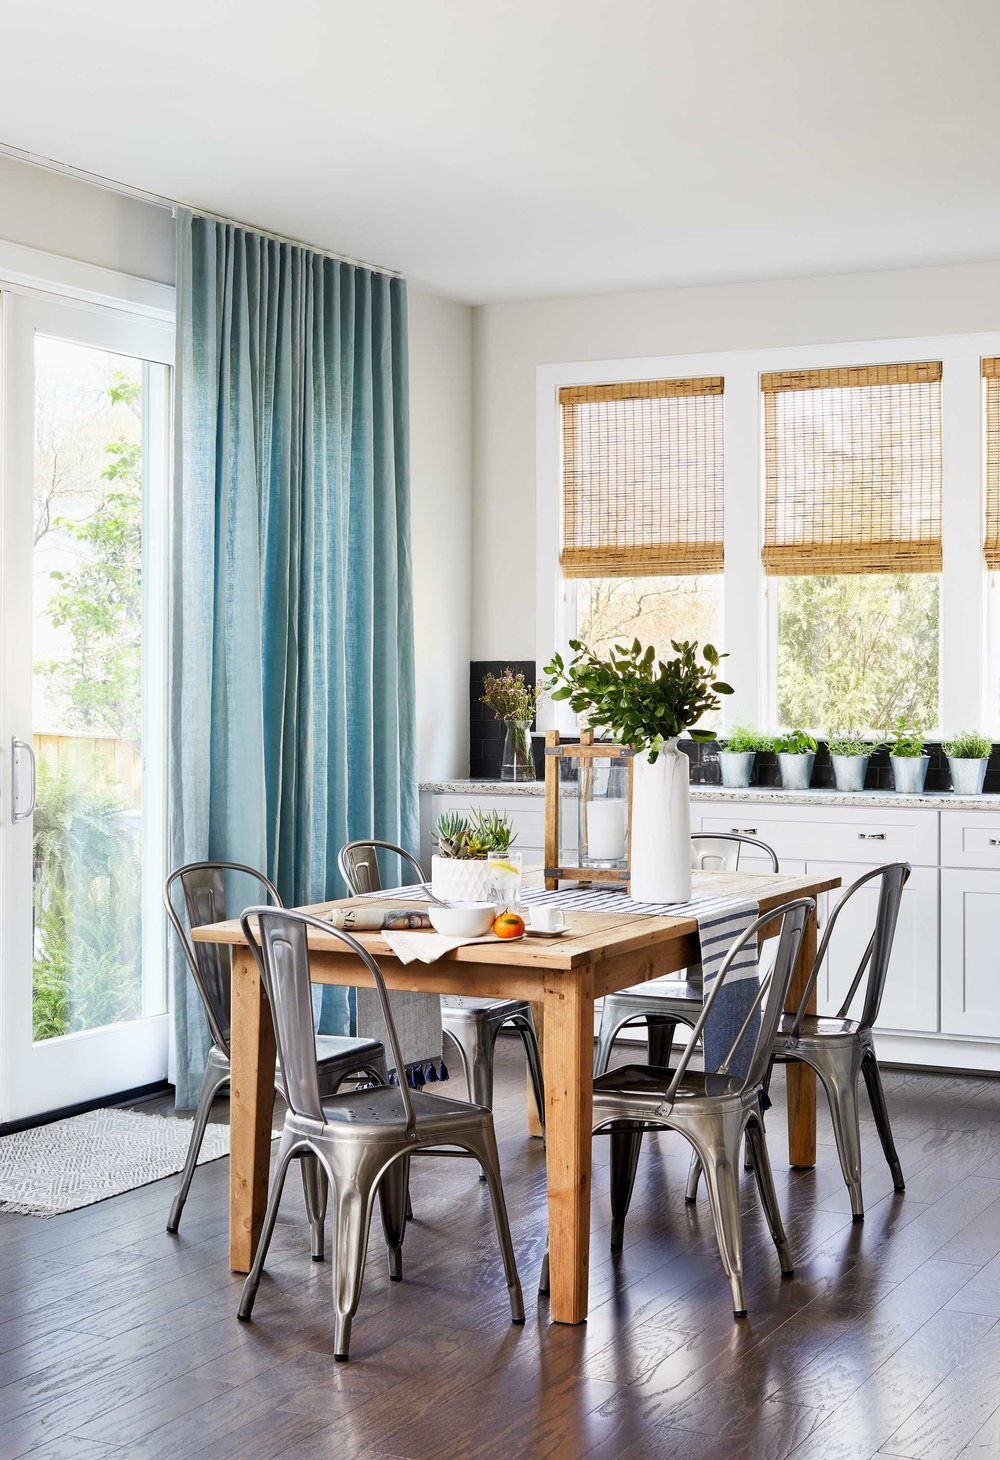 Small wooden breakfast table with metal chairs